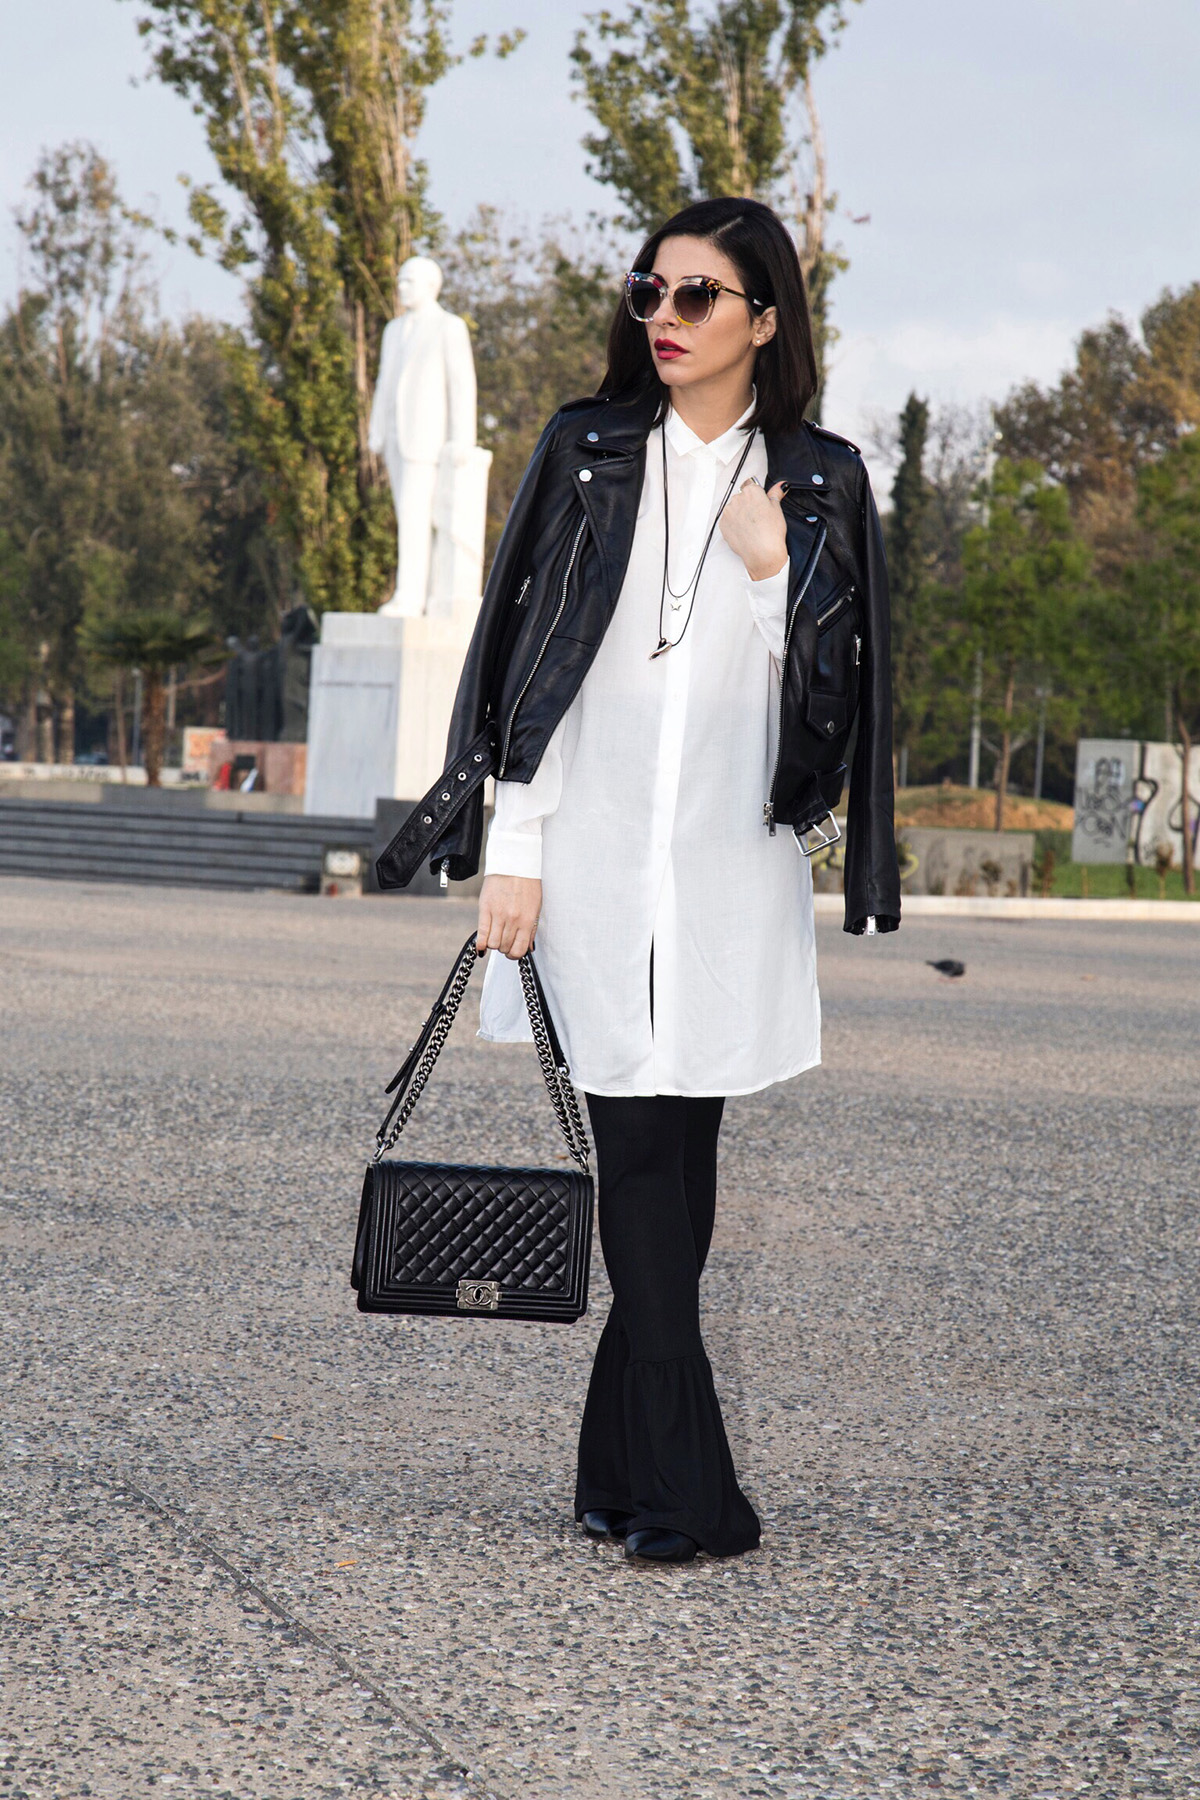 black and white edgy chic outfit